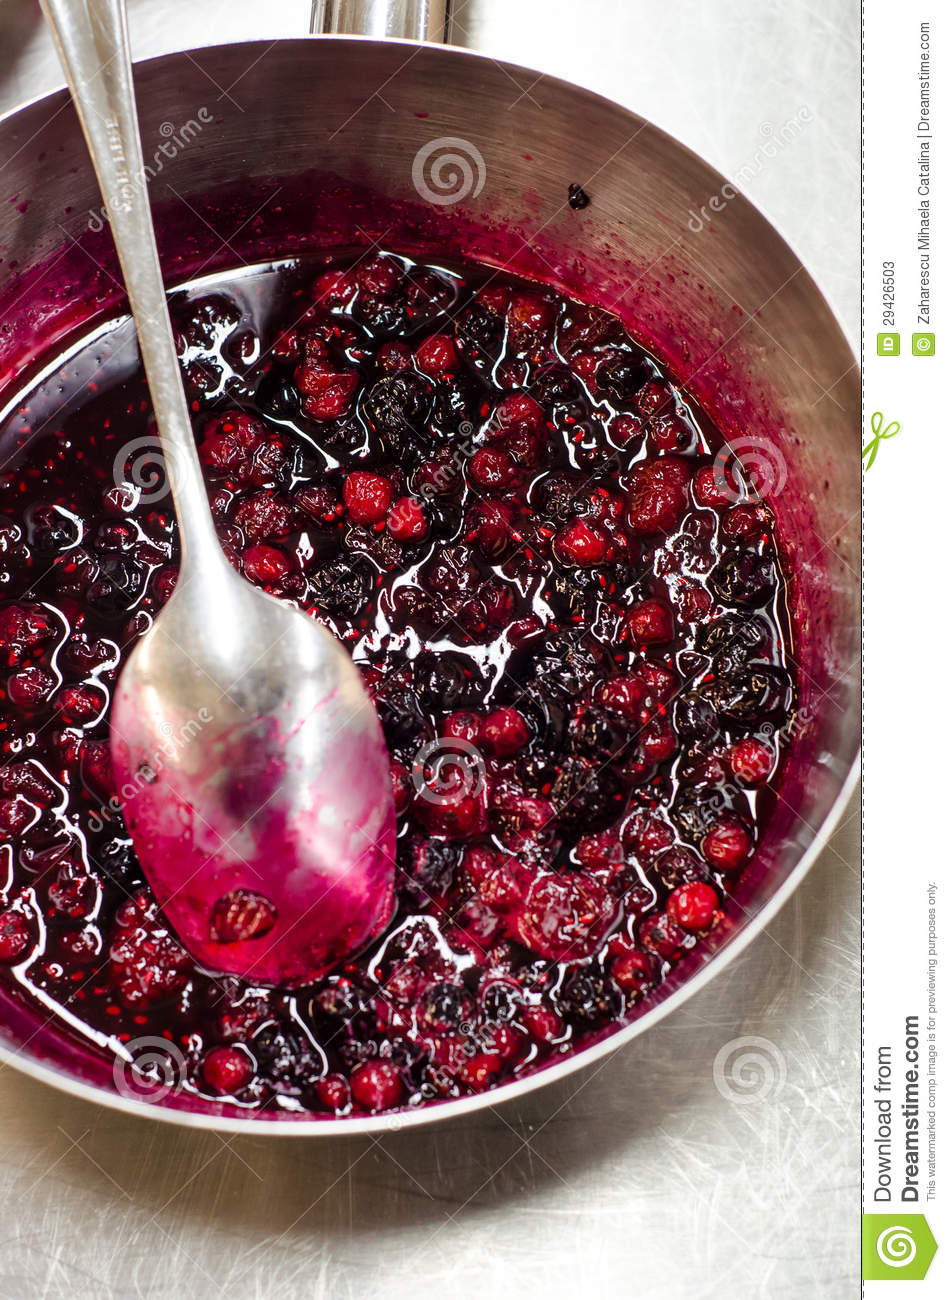 Forest berries reduction